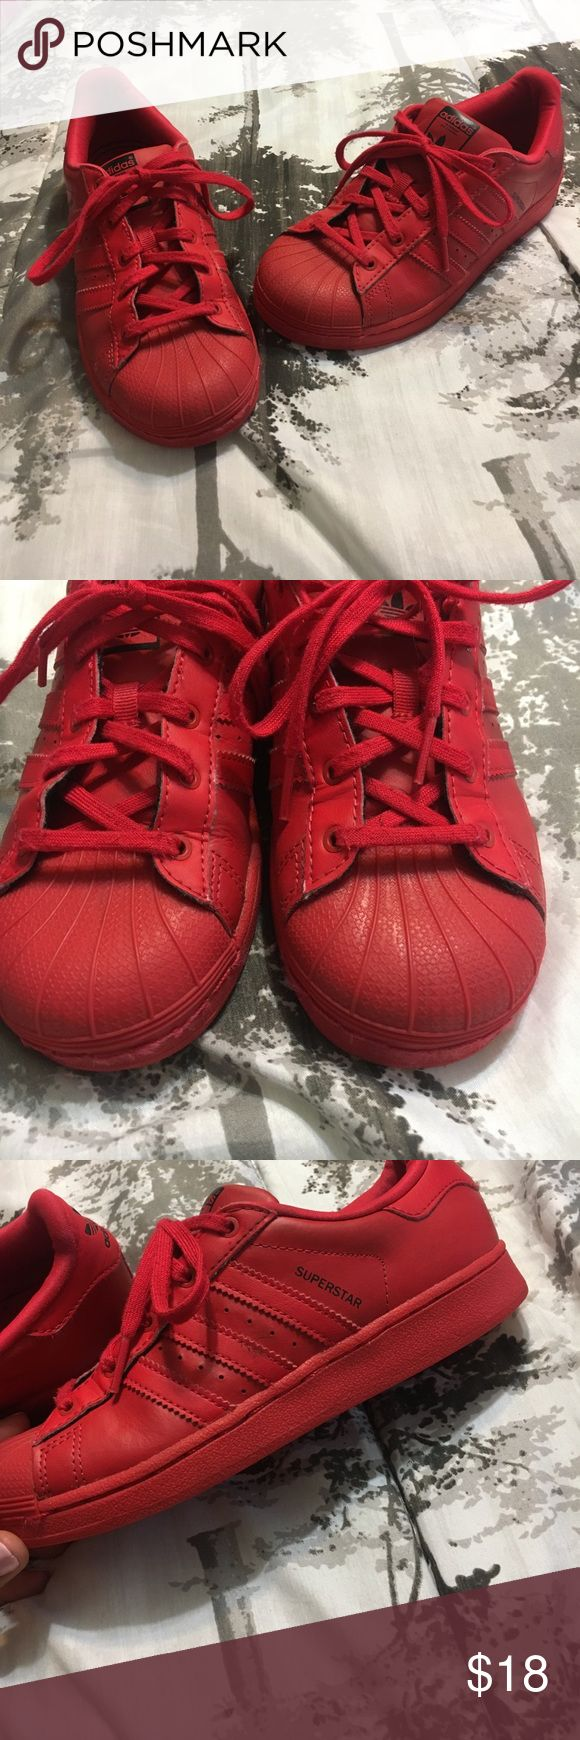 Unisex Adidas superstar tennis shoes Has been worn but has alot of wear left in them, size 3 adidas Shoes Sneakers